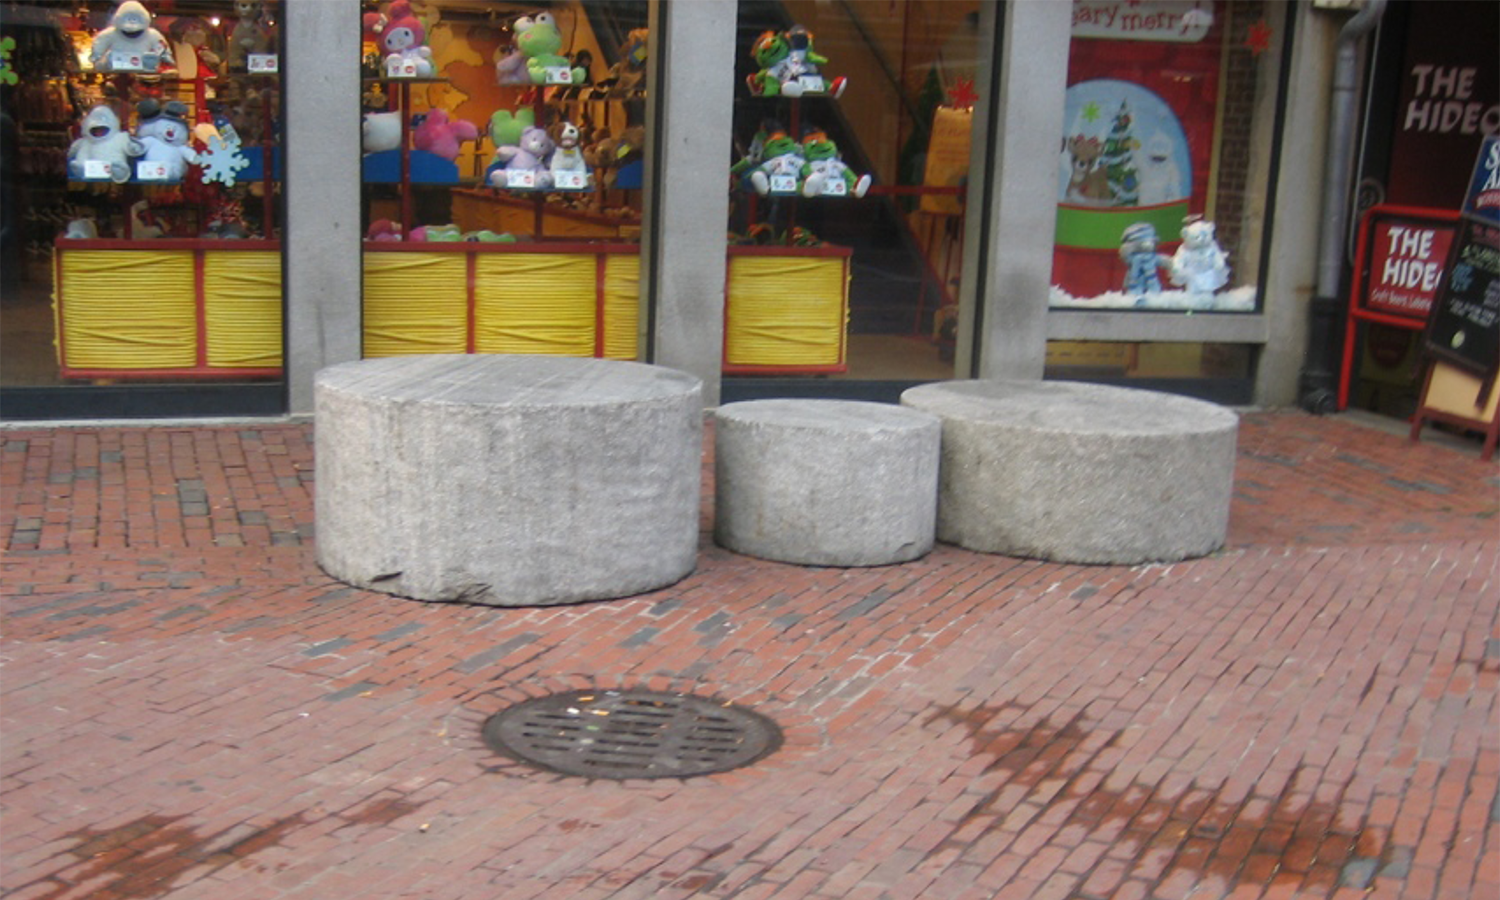 These stones were just the right height to lean on, but not repeated anywhere else. Not very dependable.